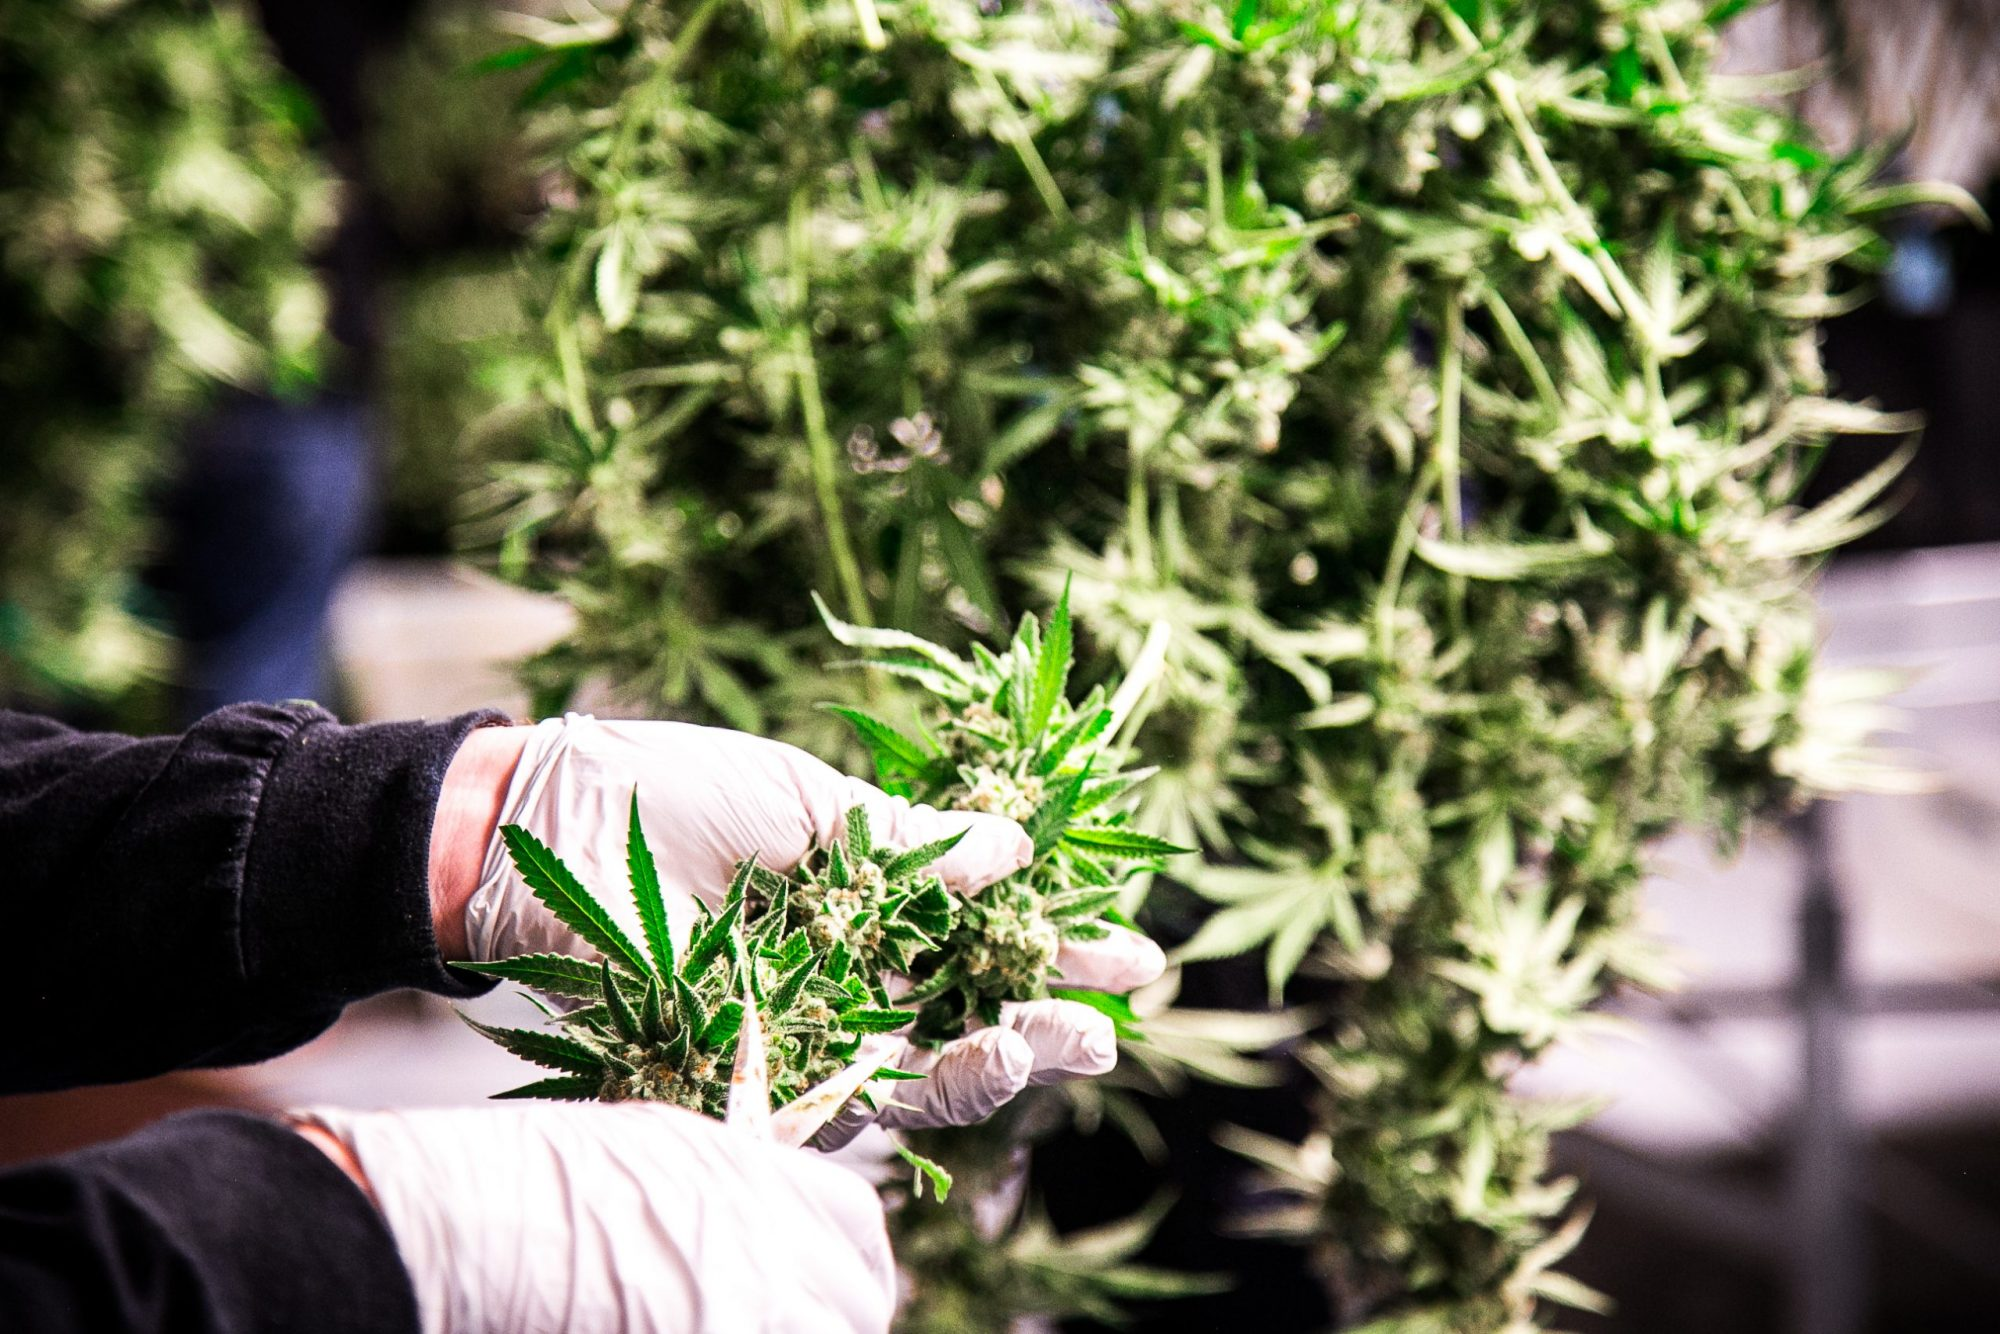 Cannabis Master Grower Practices in Canada